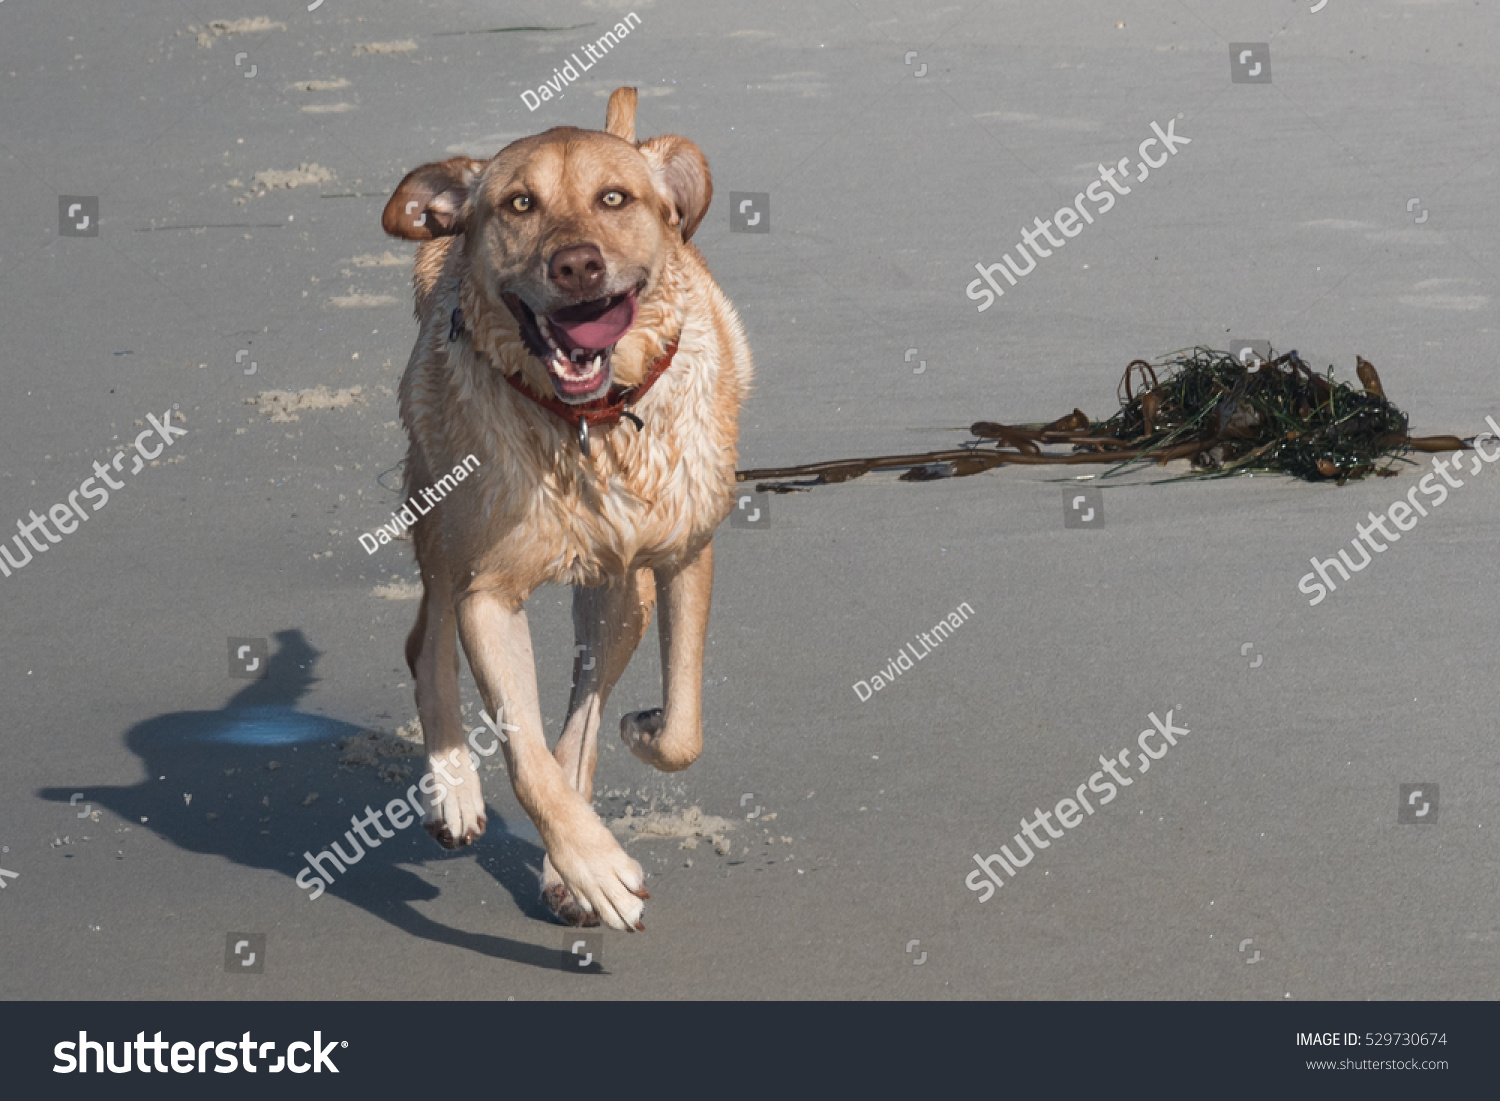 A happy yellow Labrador (lab) retriever runs off leash on the famous dog friendly beach in Carmel by the Sea, California